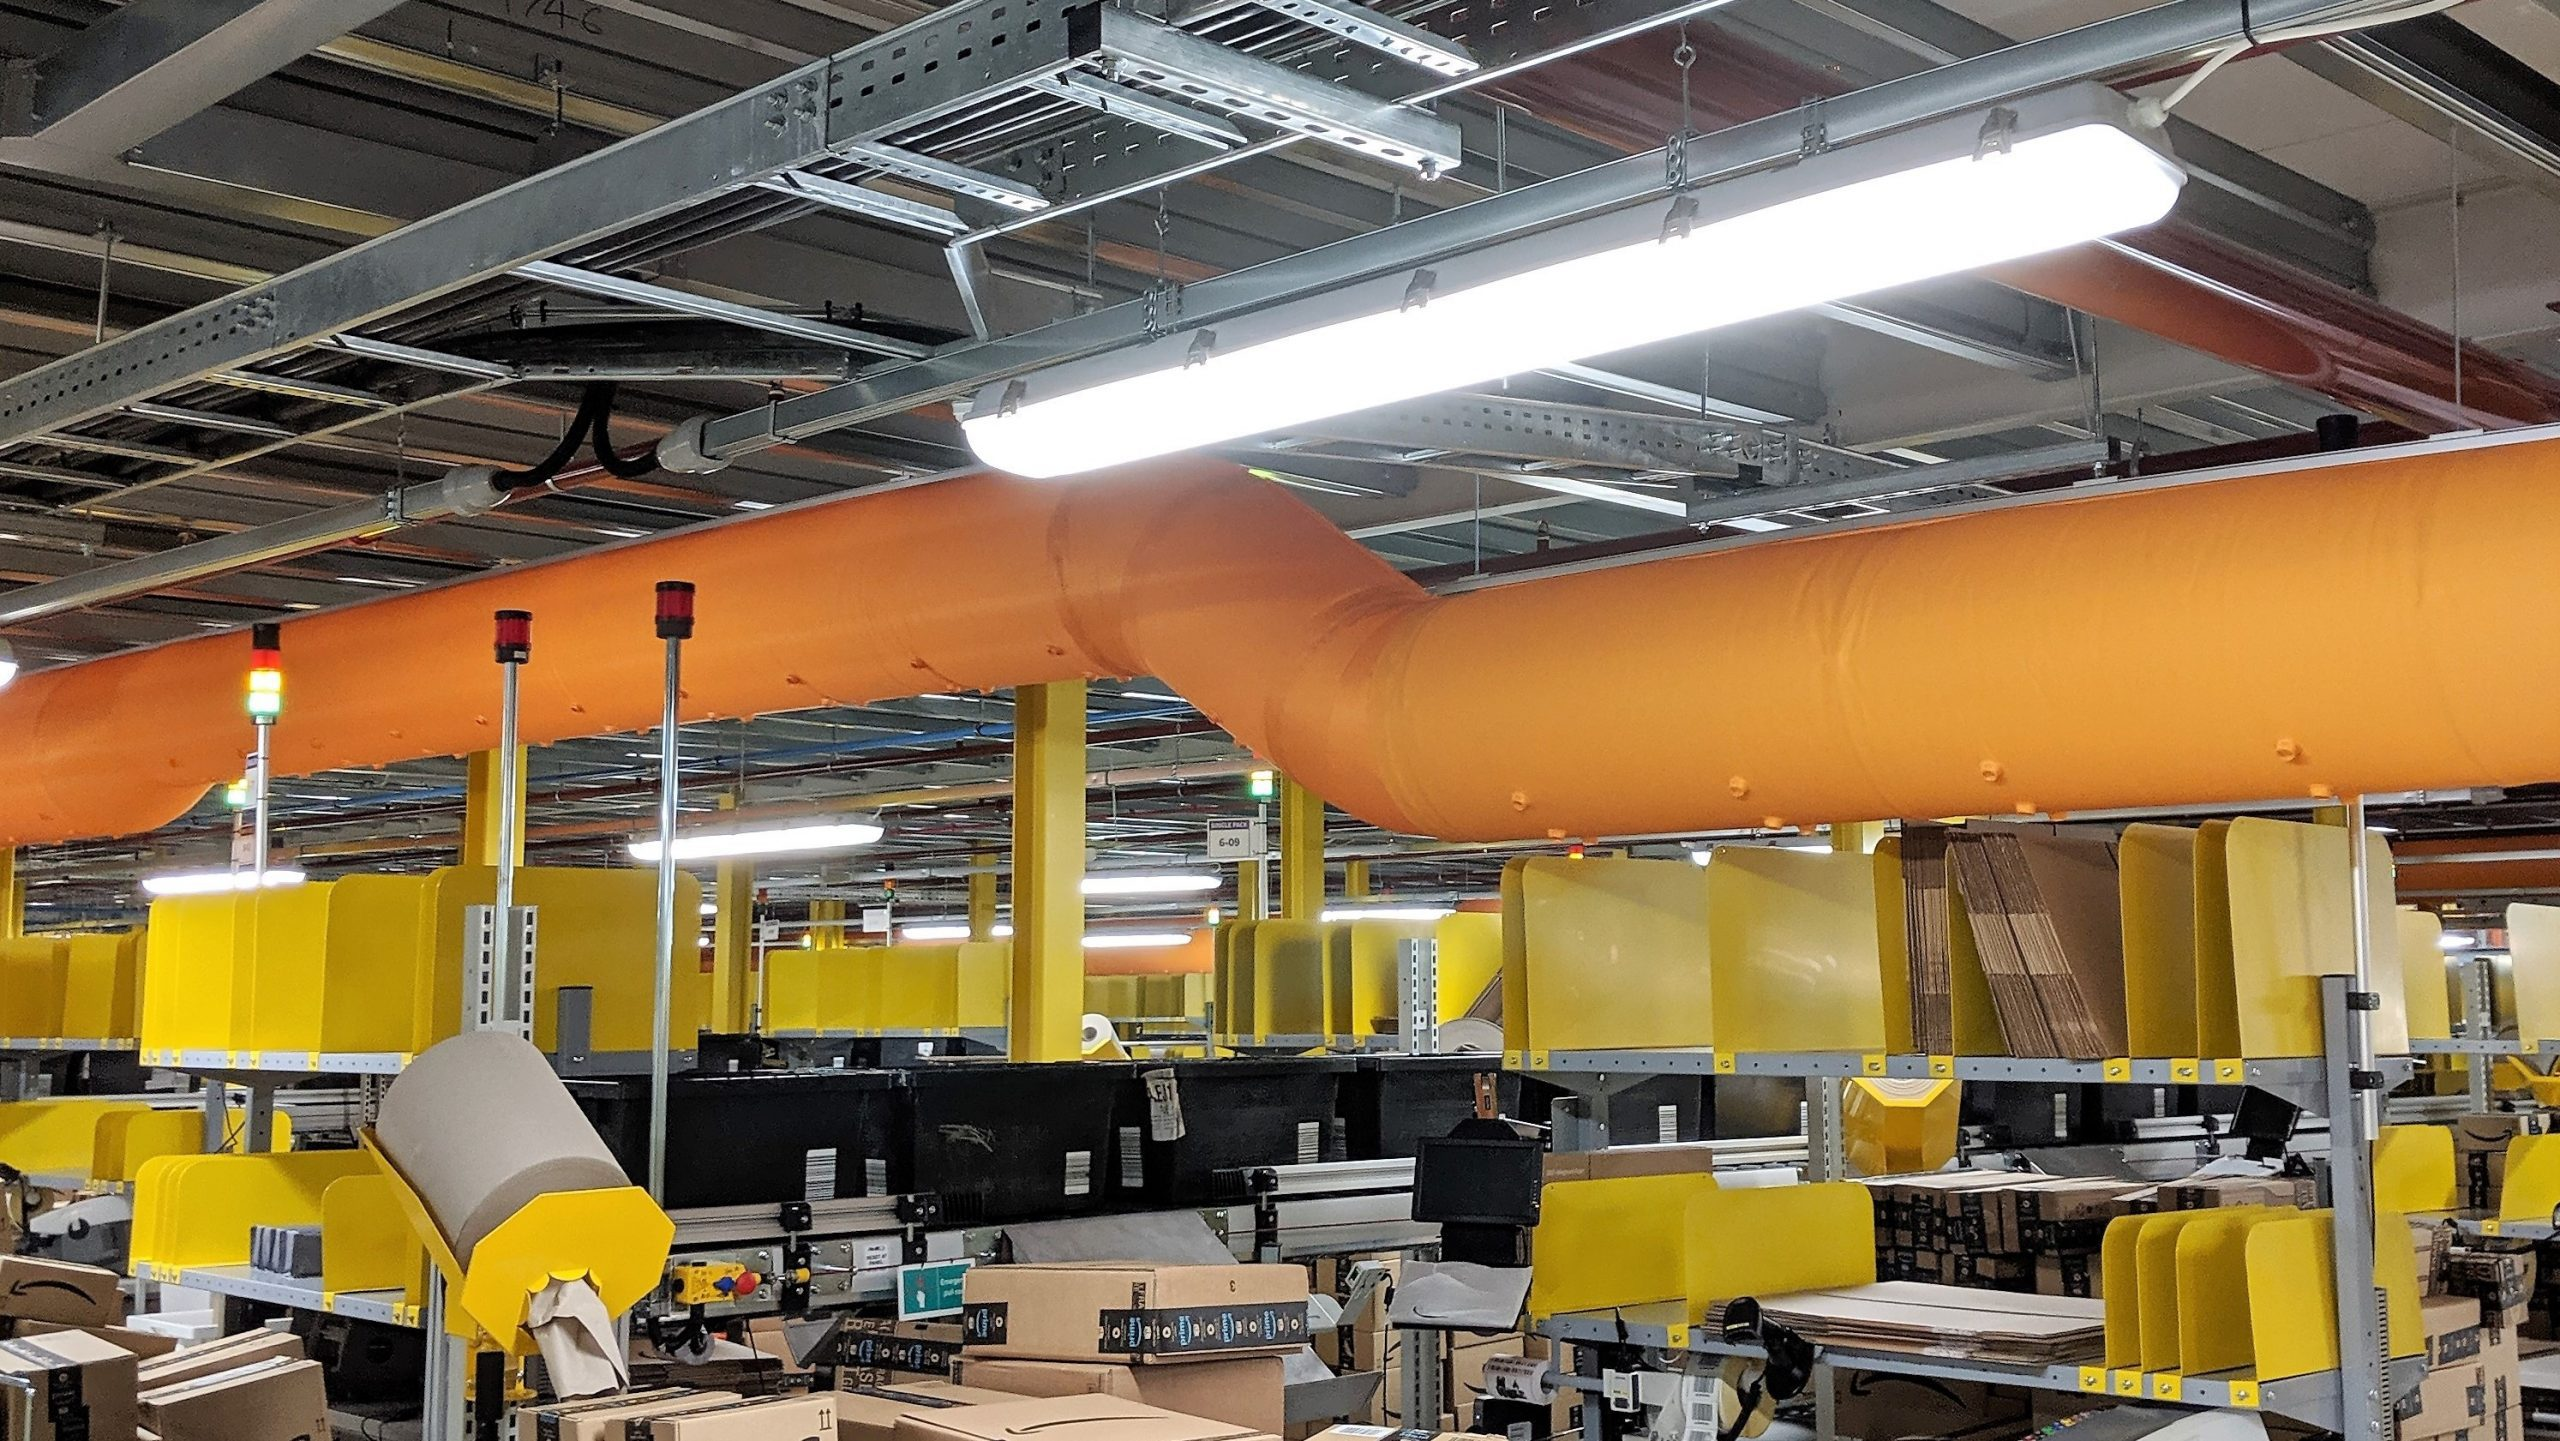 Orange fabric duct with nozzles and 45 degree bend